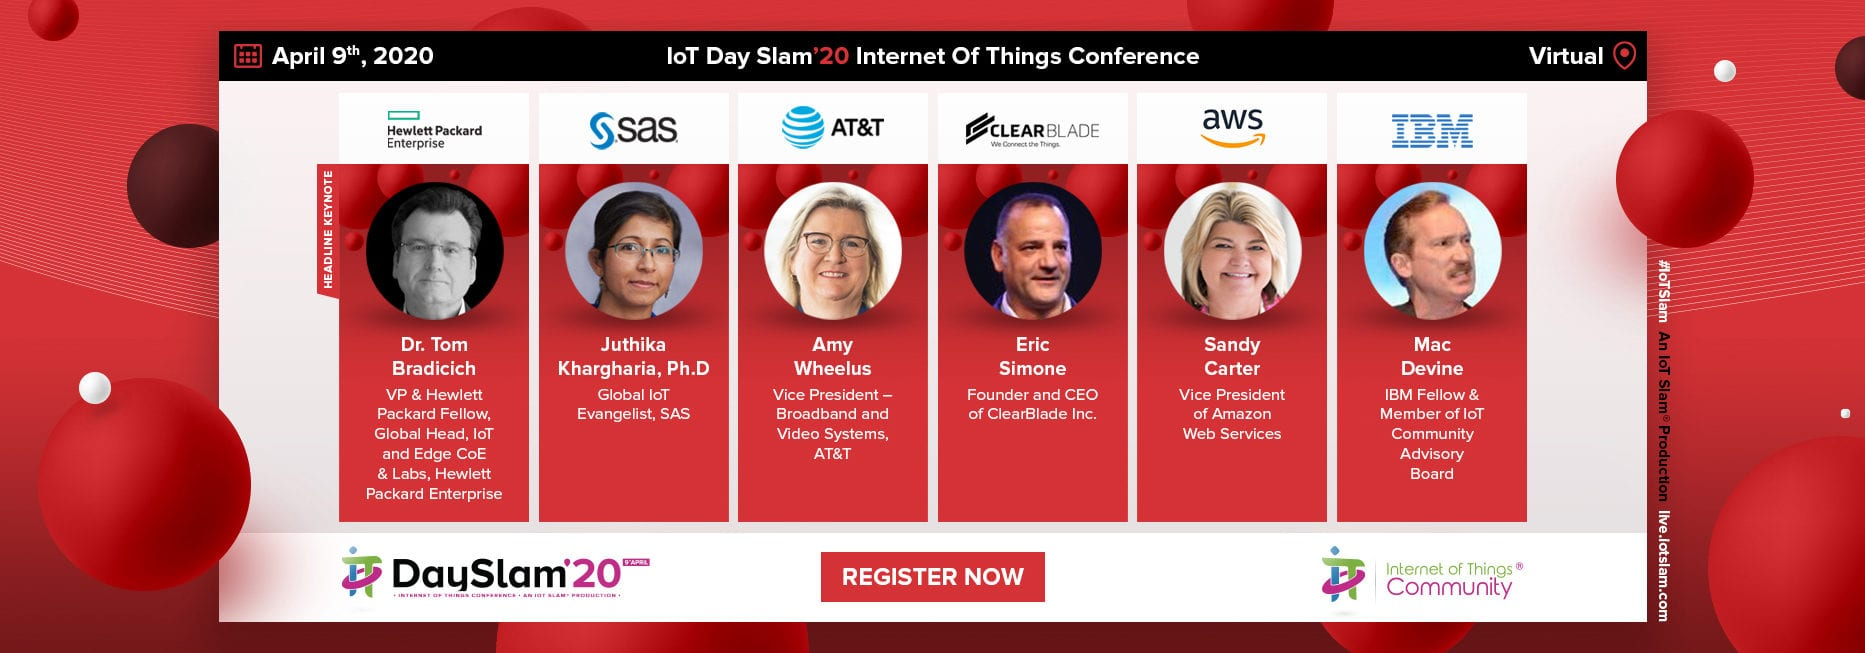 IoT Day Slam 2020 Conference Speakers